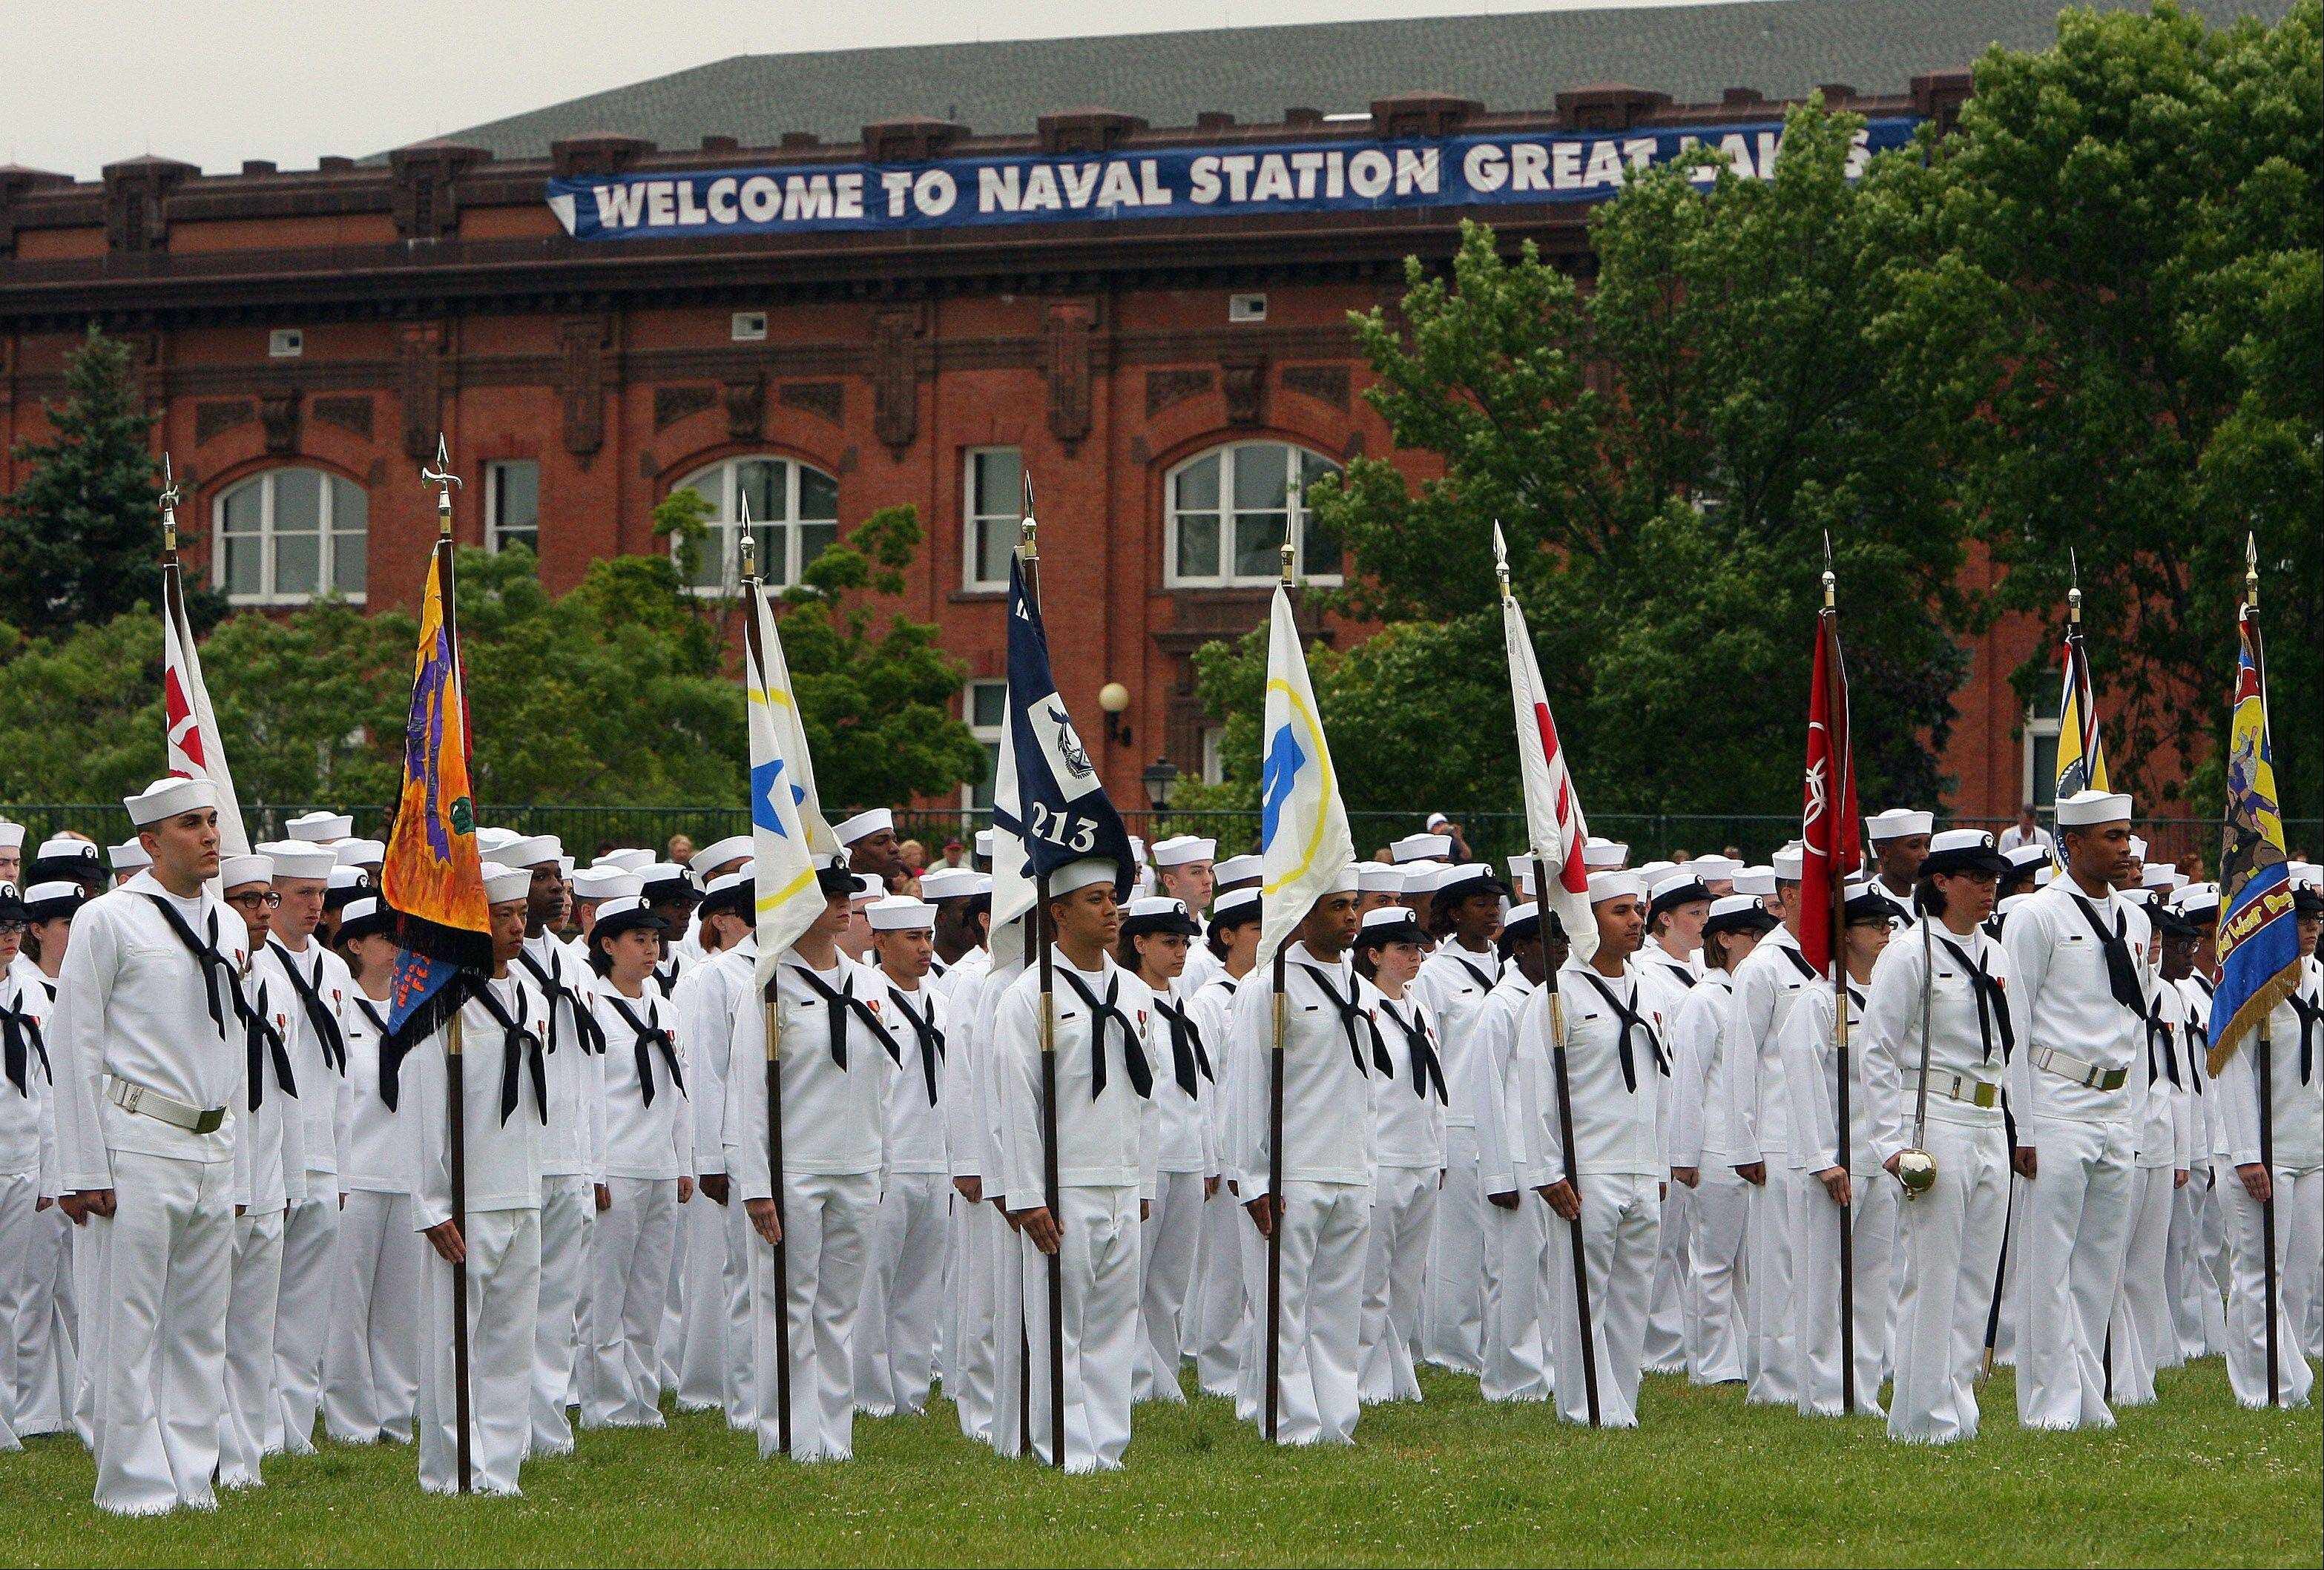 Graduation ceremonies at Great Lakes Naval Station Friday. About 1,000 recruits graduated on its 100th anniversary.